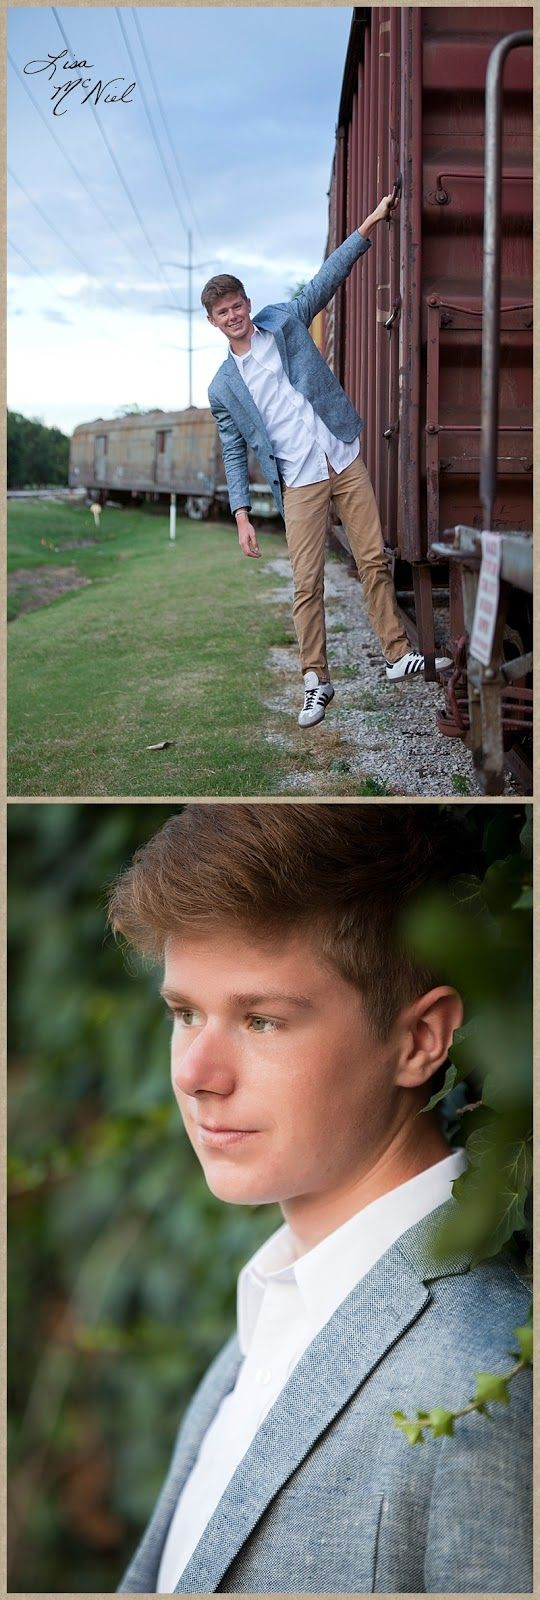 Click the pic for 9 more picture ideas for Senior boys, drummer, drums, band, Texas, Dallas, Flower Mound photographer